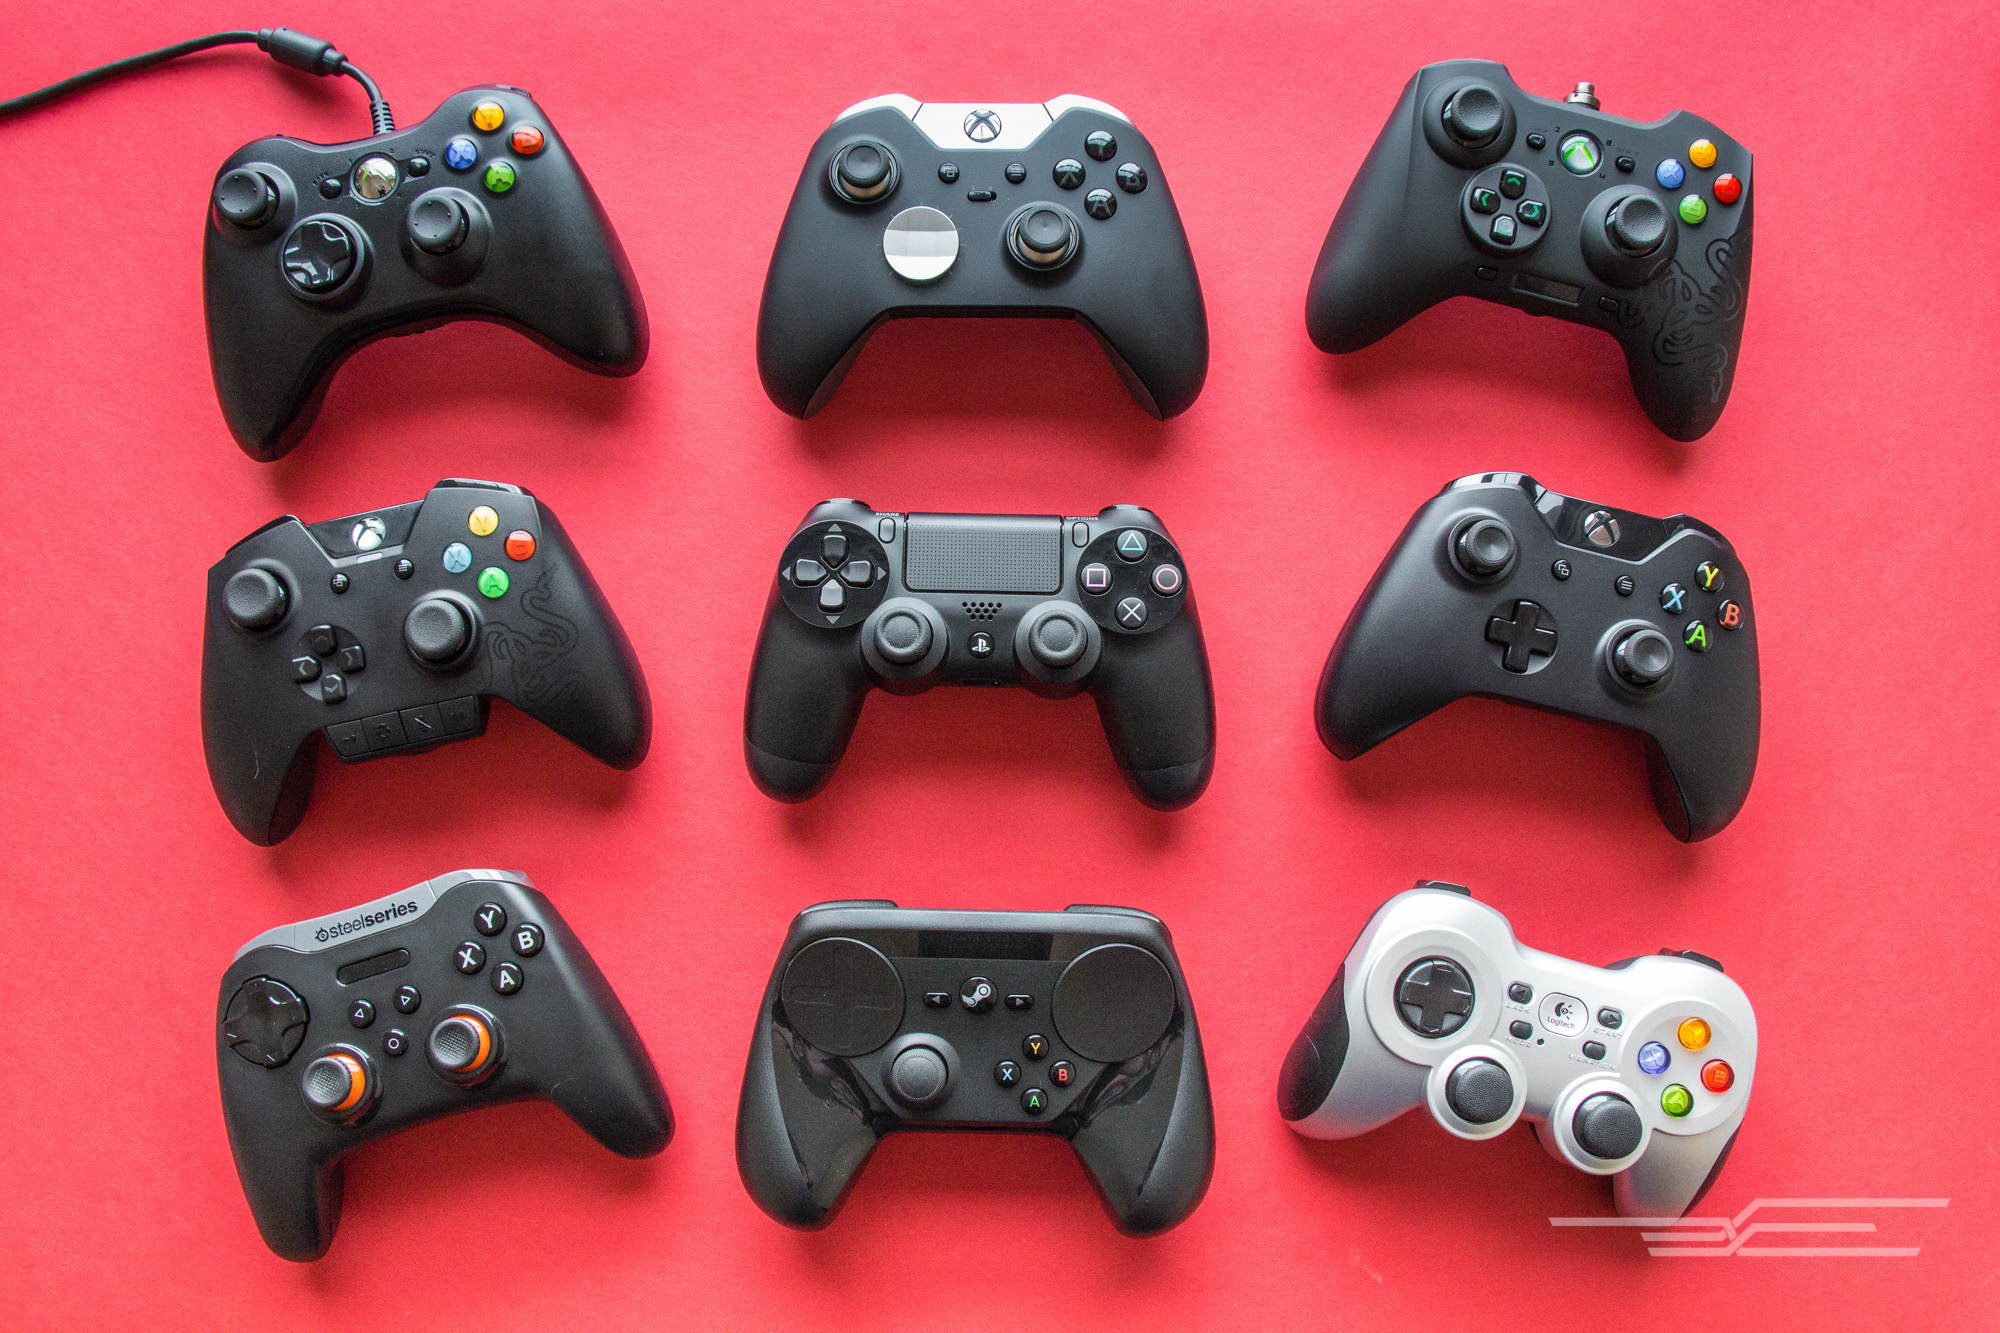 The best PC gaming controller